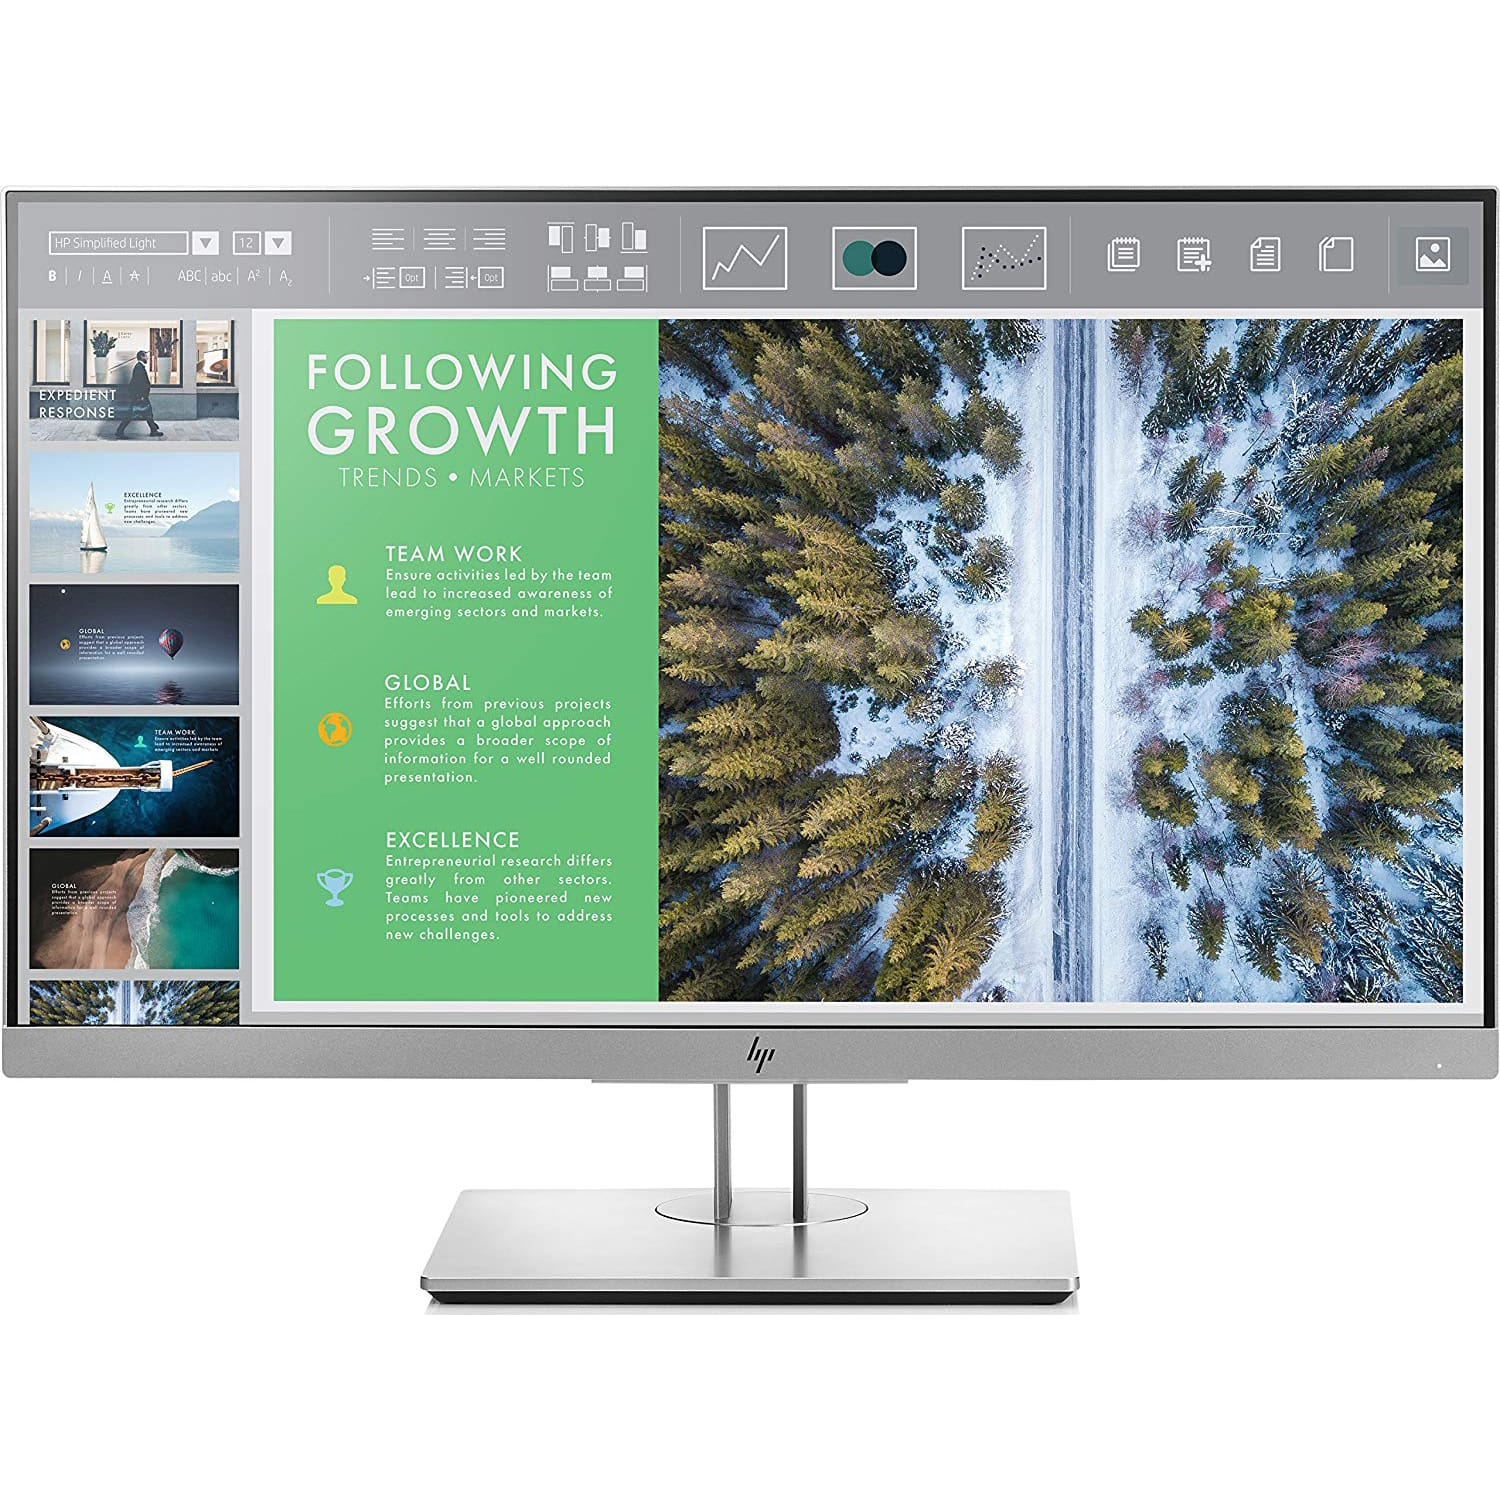 BuyDig Monitors Clearance Sales: LG 29in UltraWide IPS 2580 x 1080 (Open Box) $148, HP EliteDisplay 23.8in LED $143 and more + free s/h